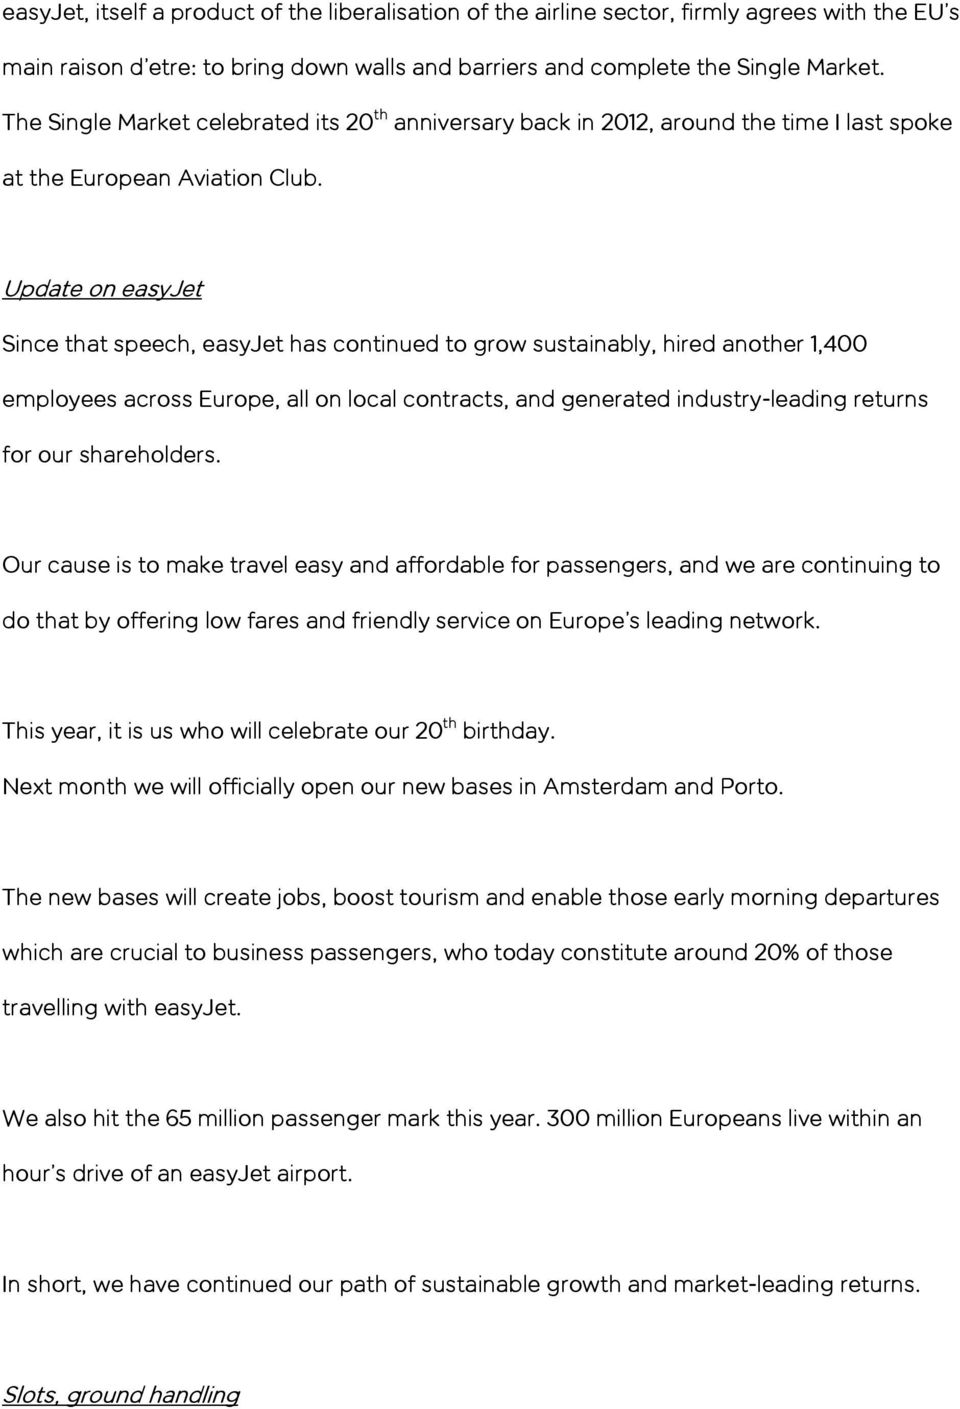 Update on easyjet Since that speech, easyjet has continued to grow sustainably, hired another 1,400 employees across Europe, all on local contracts, and generated industry-leading returns for our